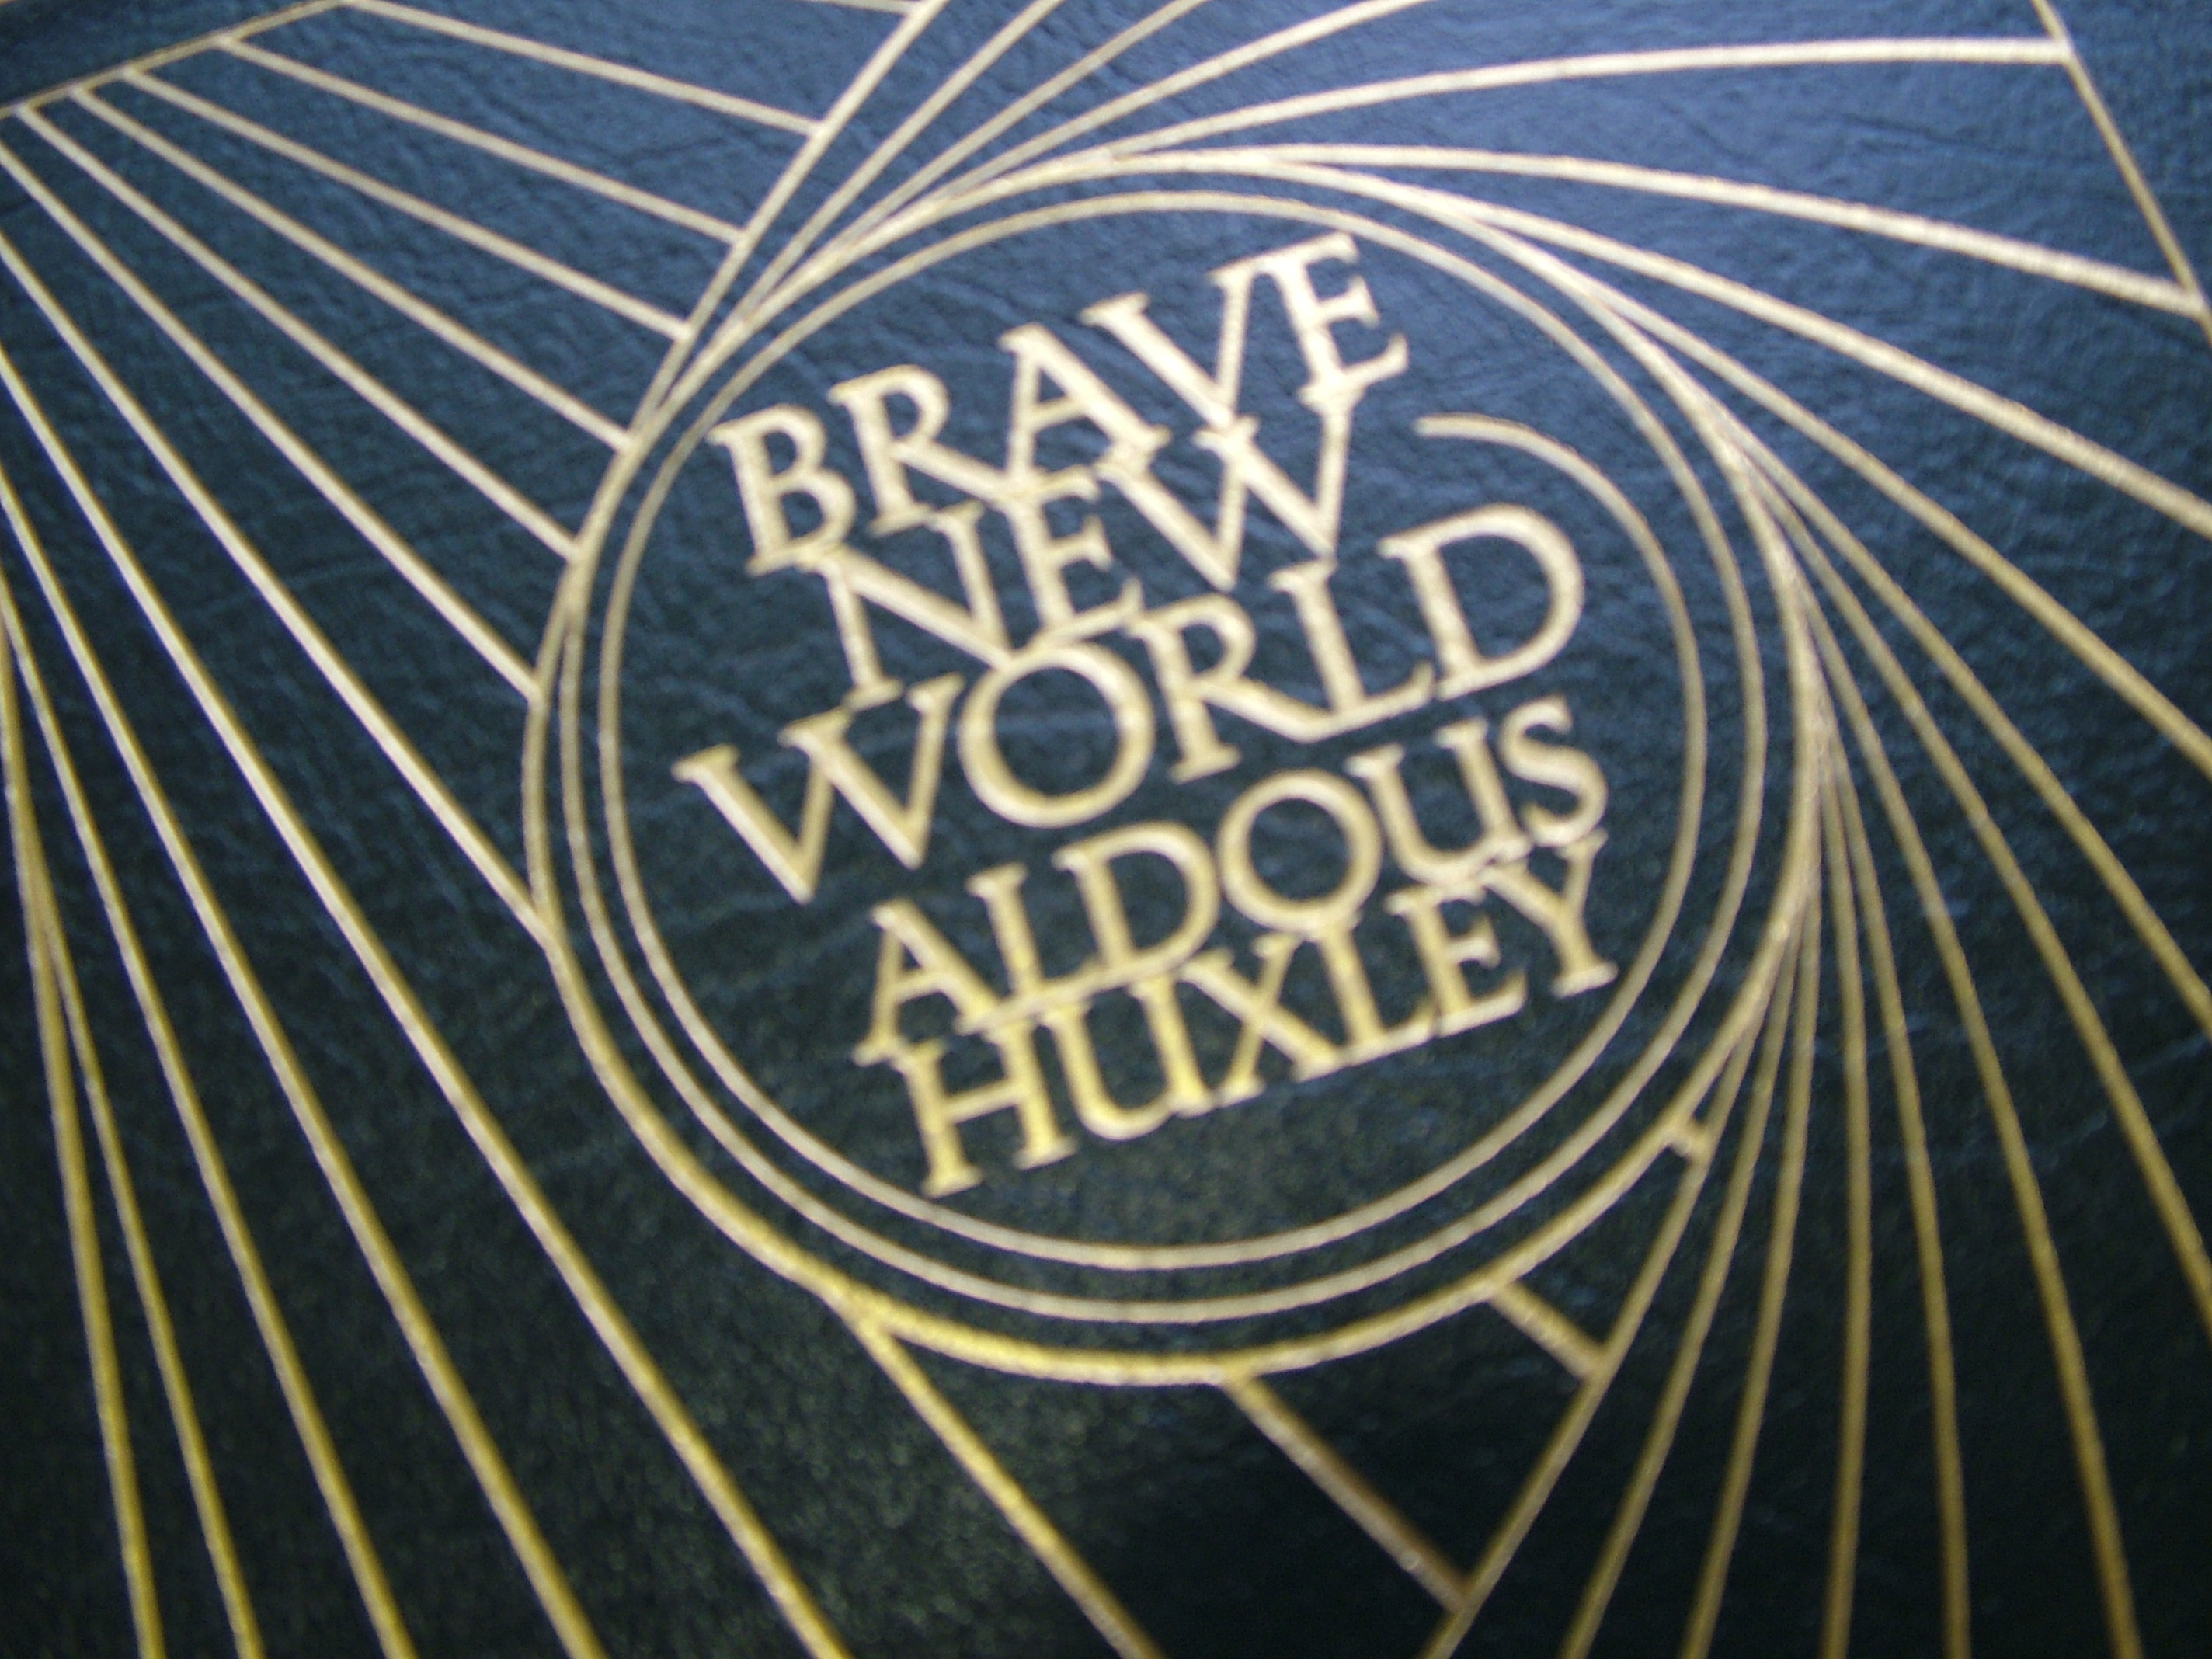 1984 brave new world essay